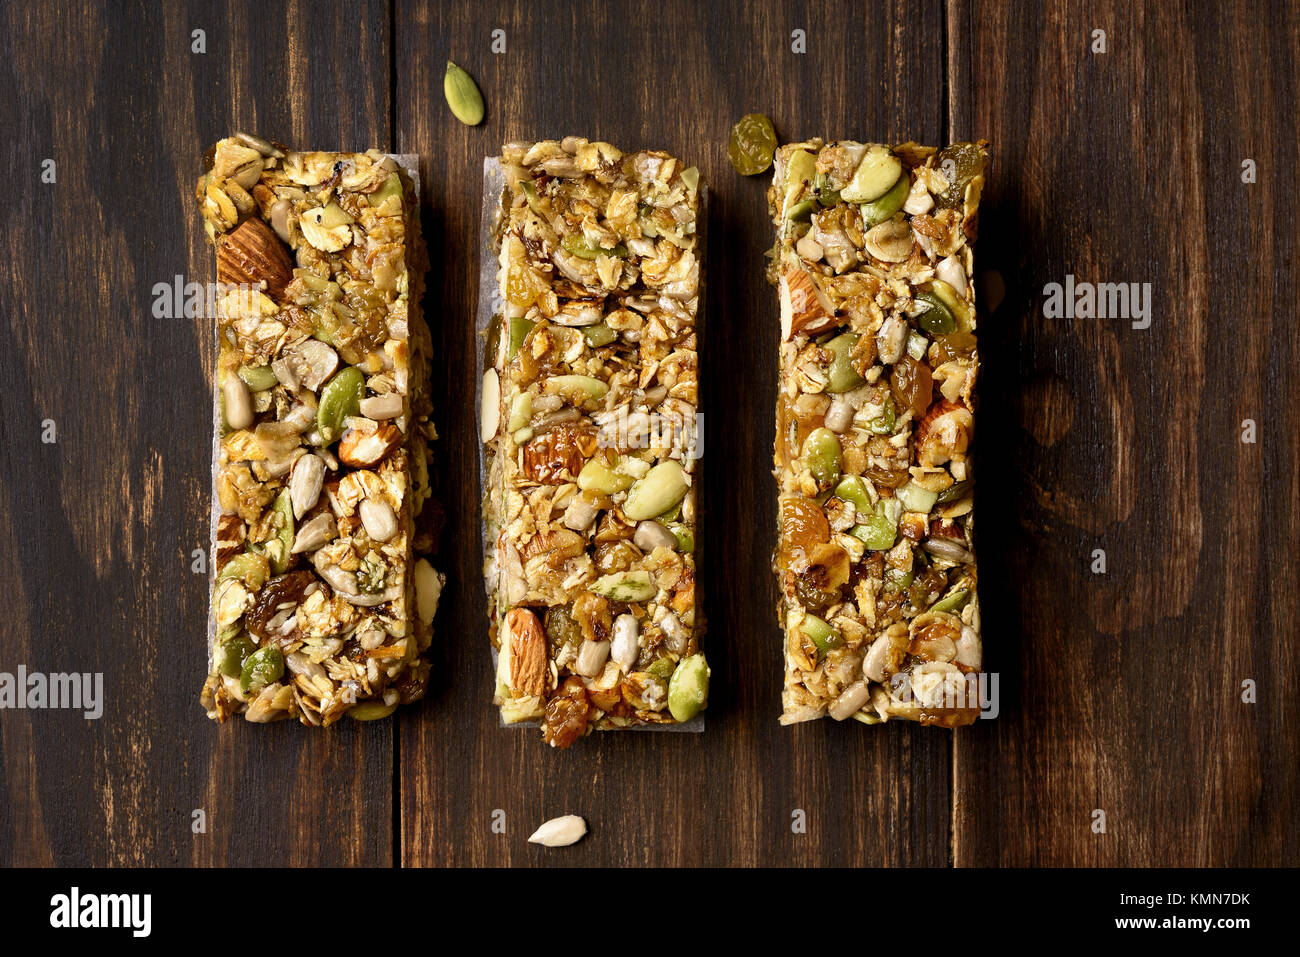 Cereal granola bar. Energy snack on wooden background. Top view, flat lay food. - Stock Image